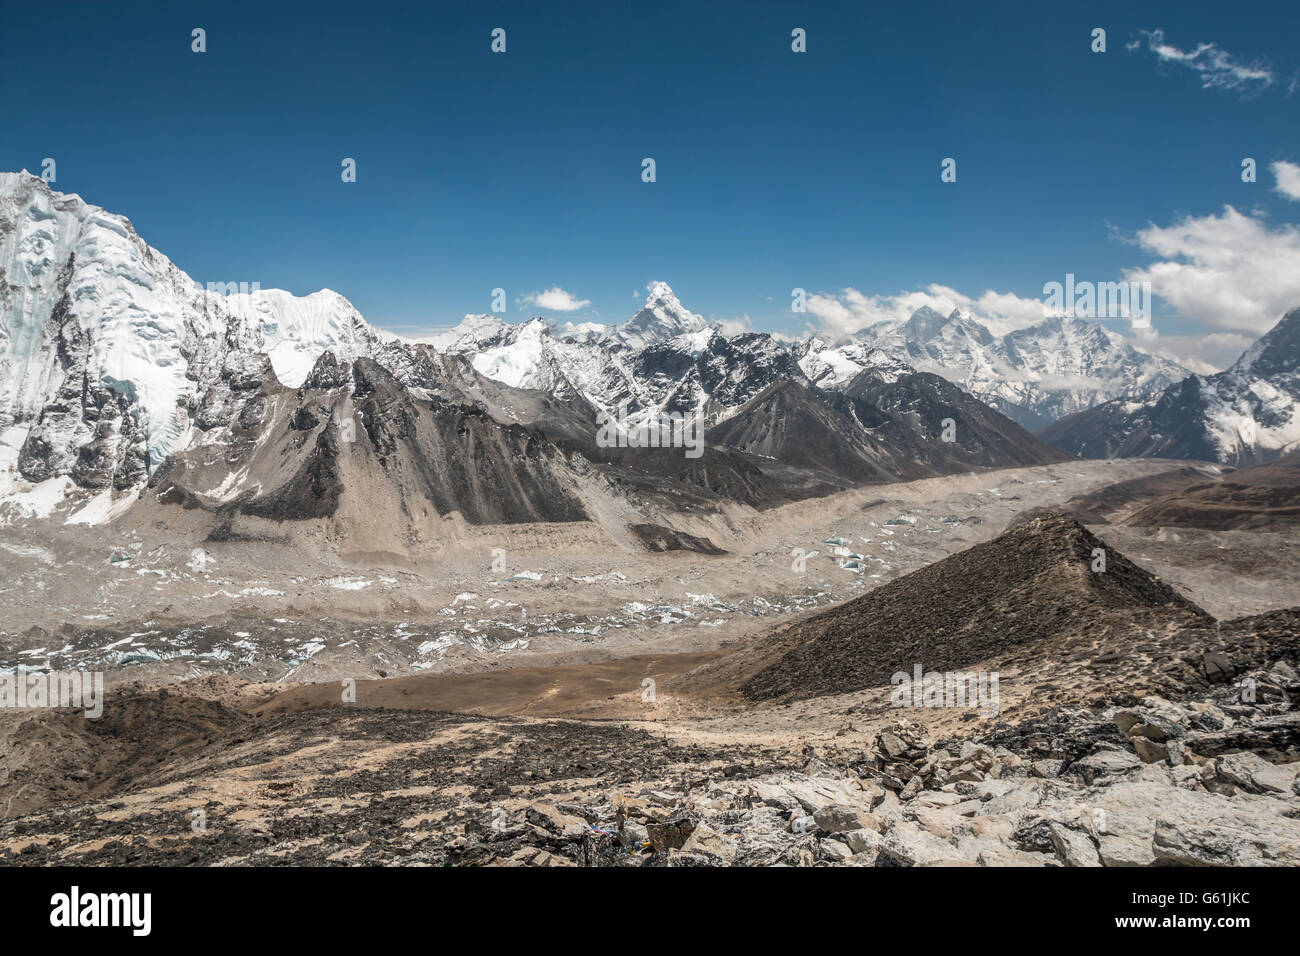 Khumbu valley in Mount Everest base camp - Stock Image